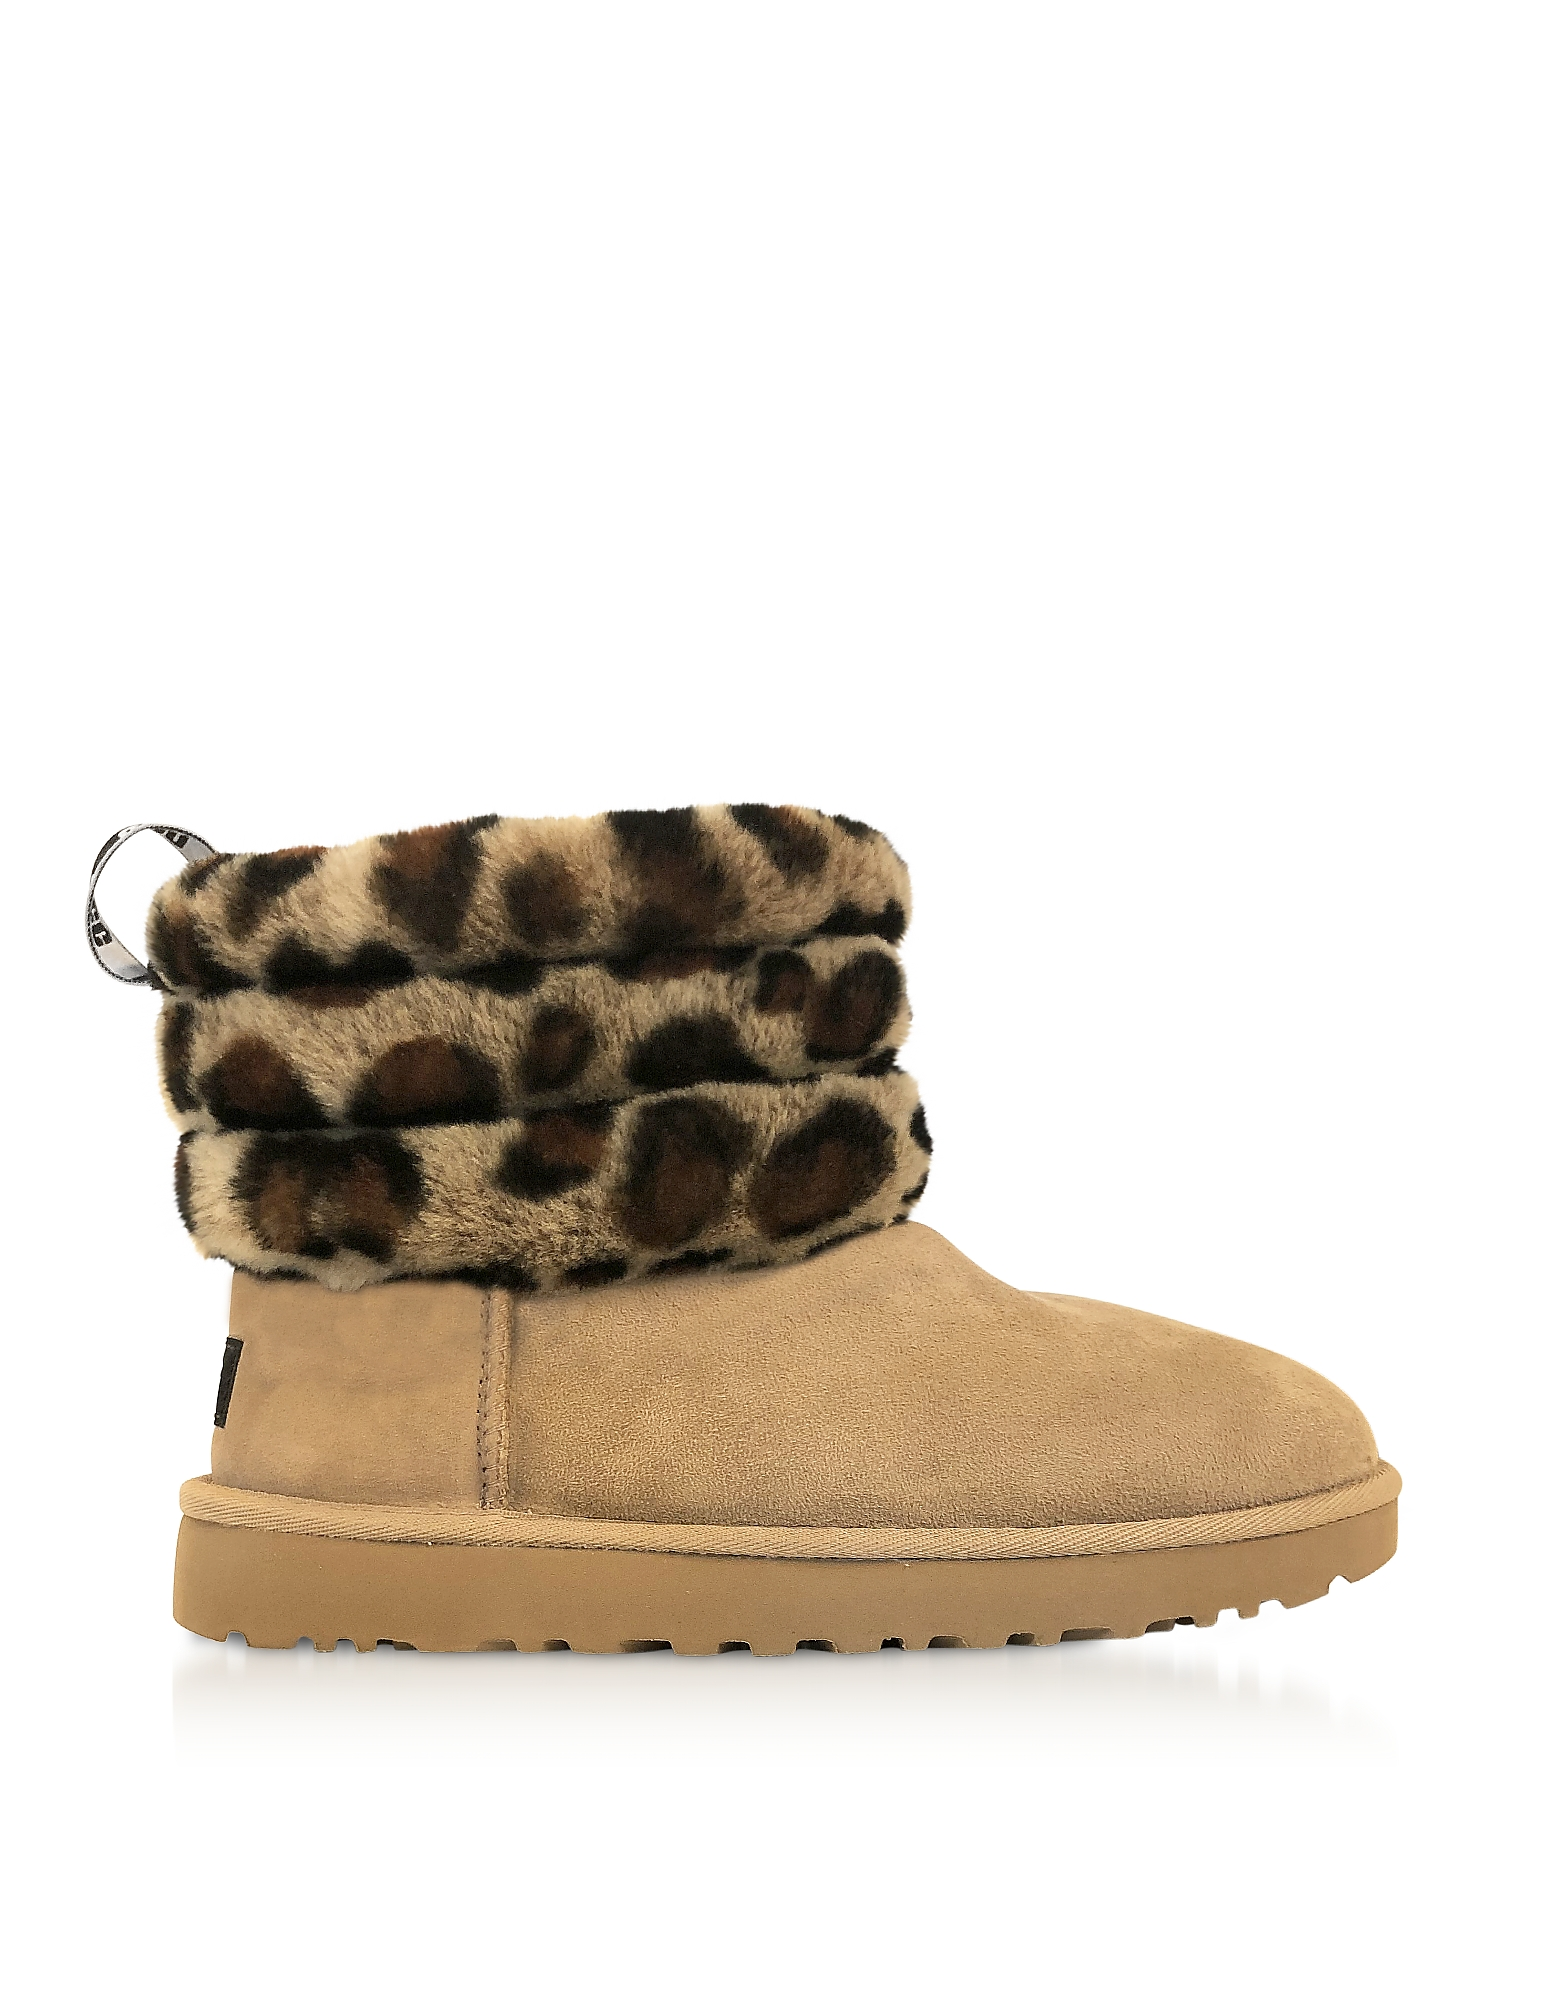 UGG Designer Shoes, Leopard Fluff Mini Quilted Boots